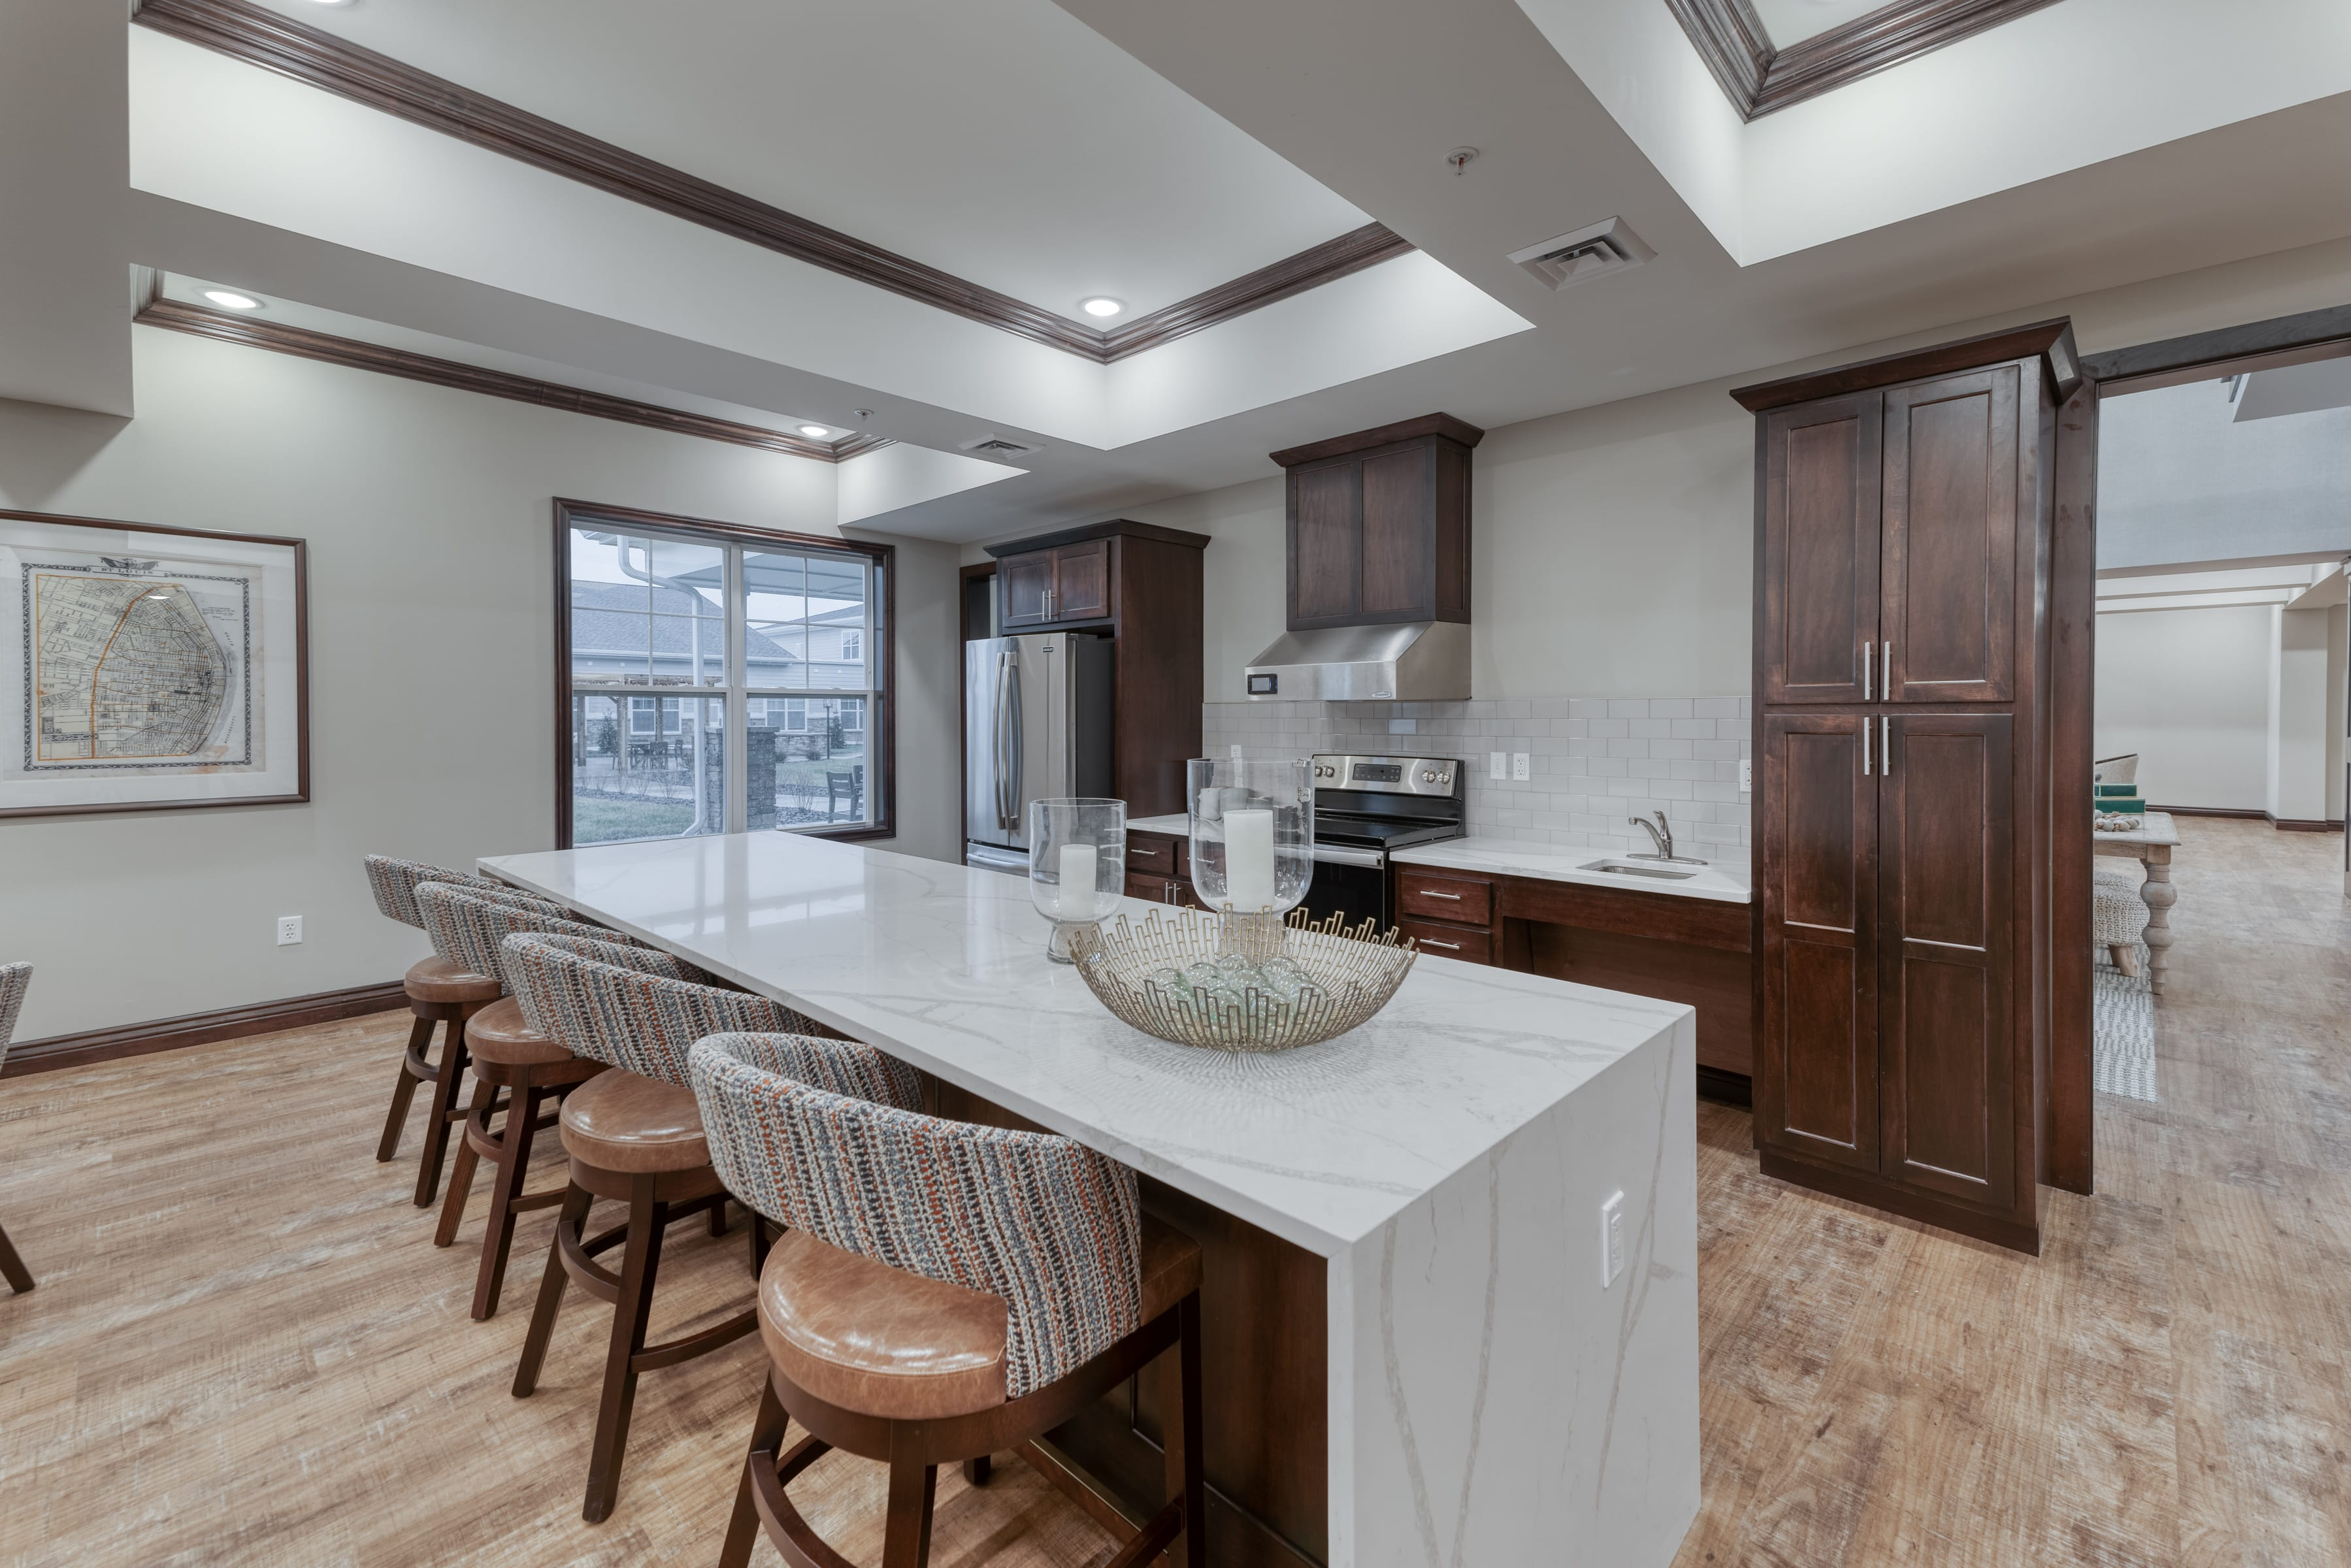 A communal kitchen allows for many options for events